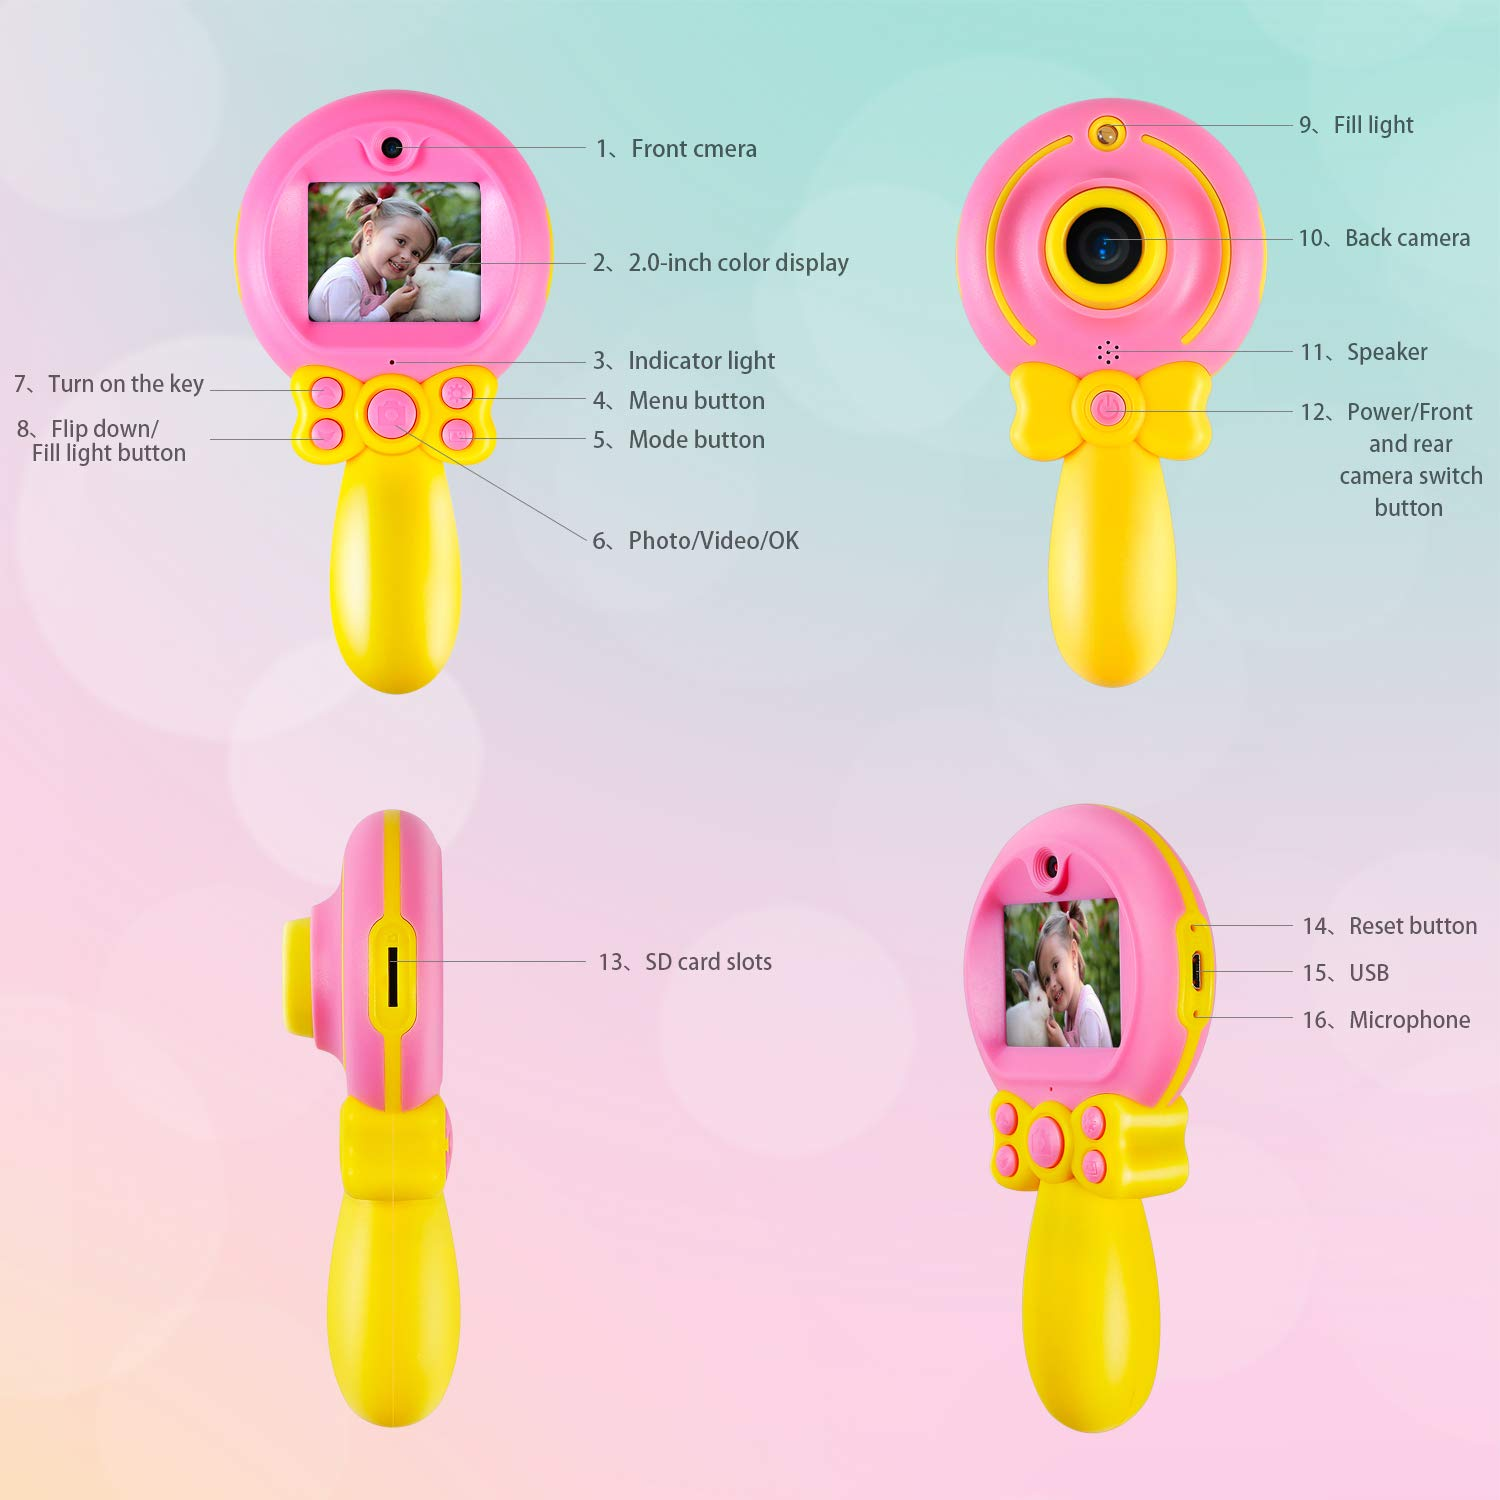 Camera for Kids Camera Toys for Girls Toys Camera for 3-8 Year Old Children's Self-timer HD Digital Video Camera 2-Inch Screen Camera Magic Wand Toy Camera MiniKids Girls Boys Birthday Gift Toys by GUANLV (Image #5)